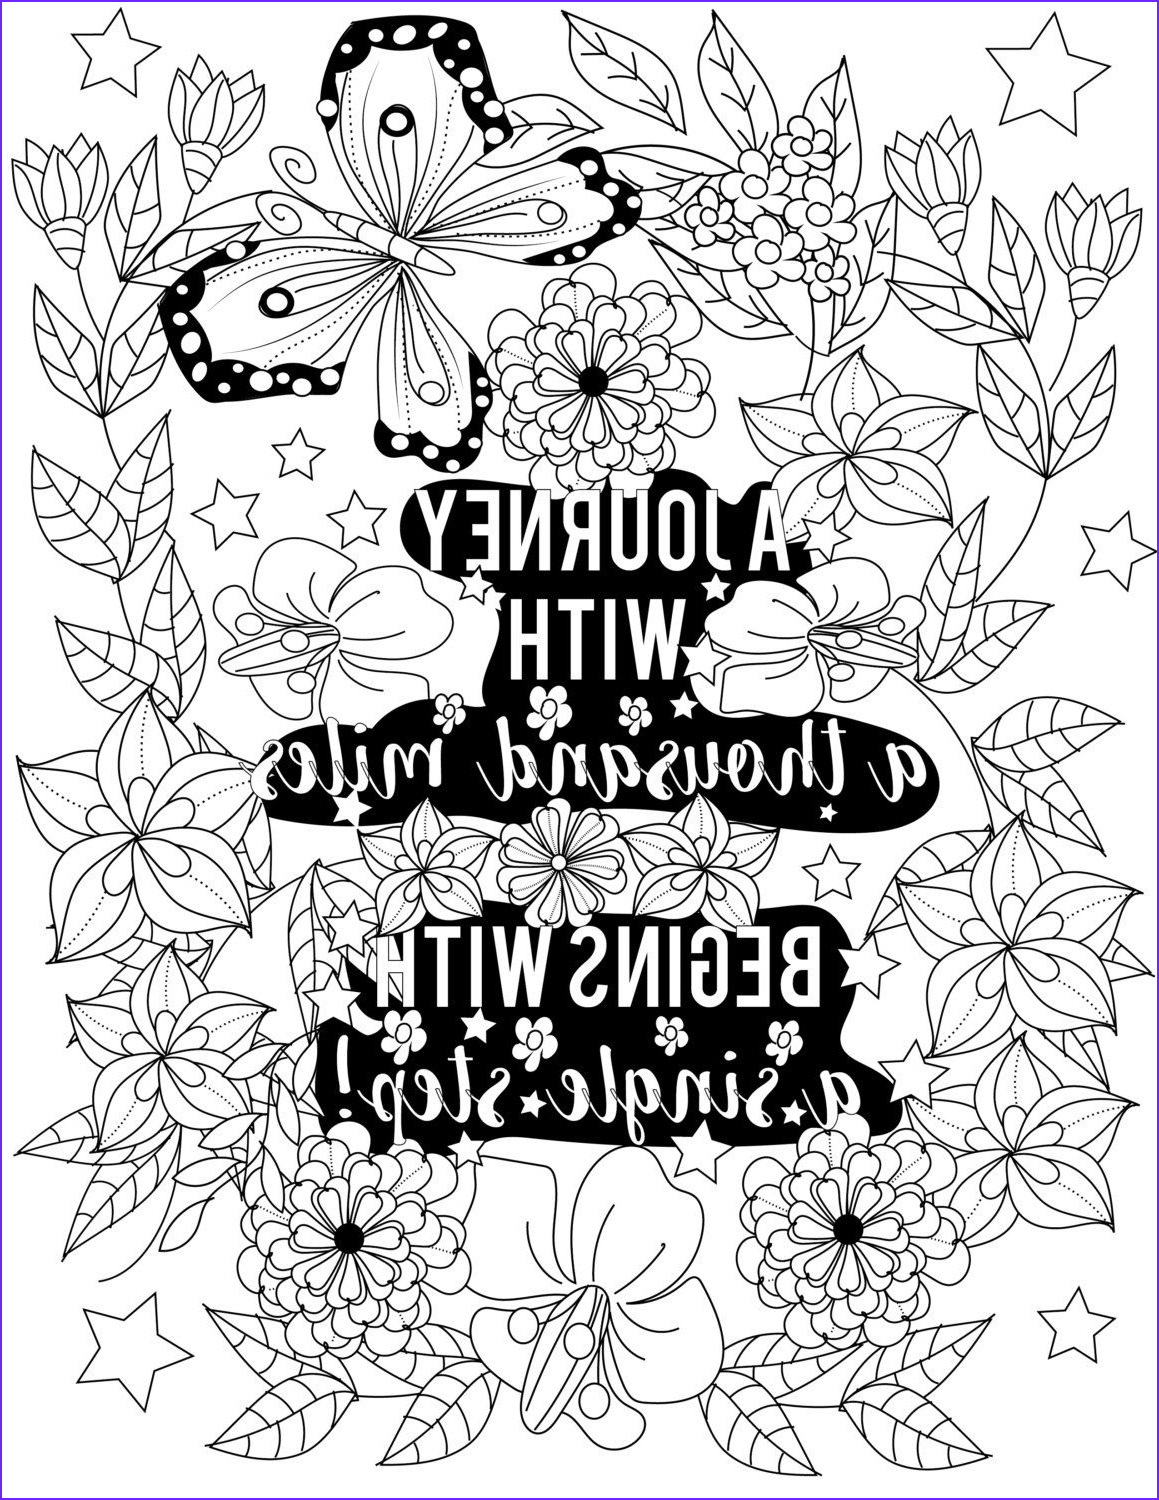 Free Quote Coloring Page New Image Inspirational Quotes A Positive & Uplifting by